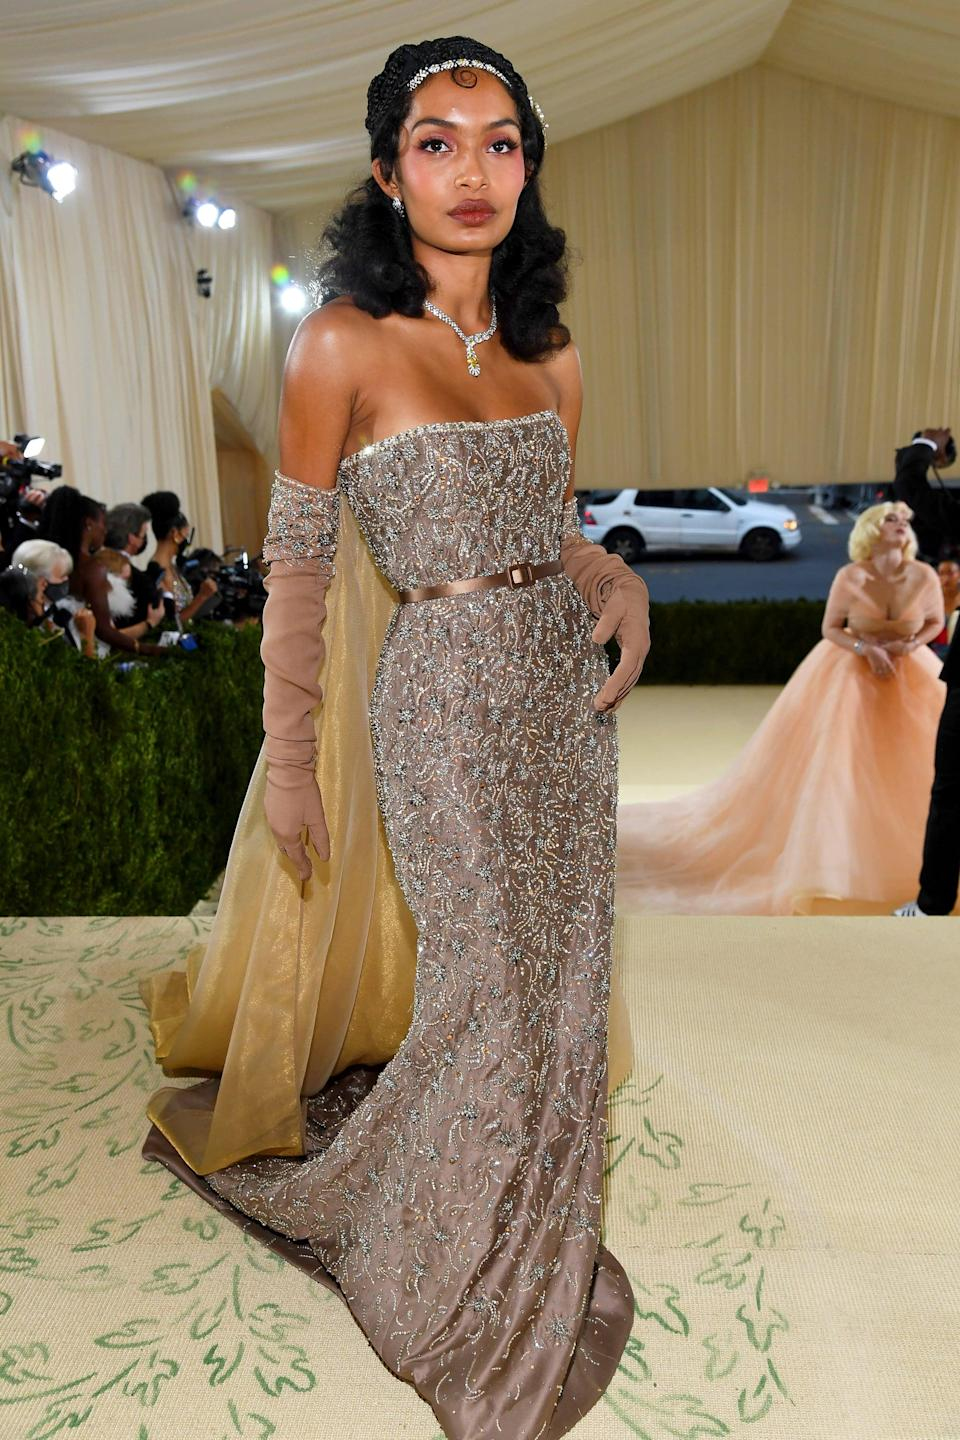 <p>The actress paid homage to the theme with a custom Dior look inspired by Josephine Baker.</p>